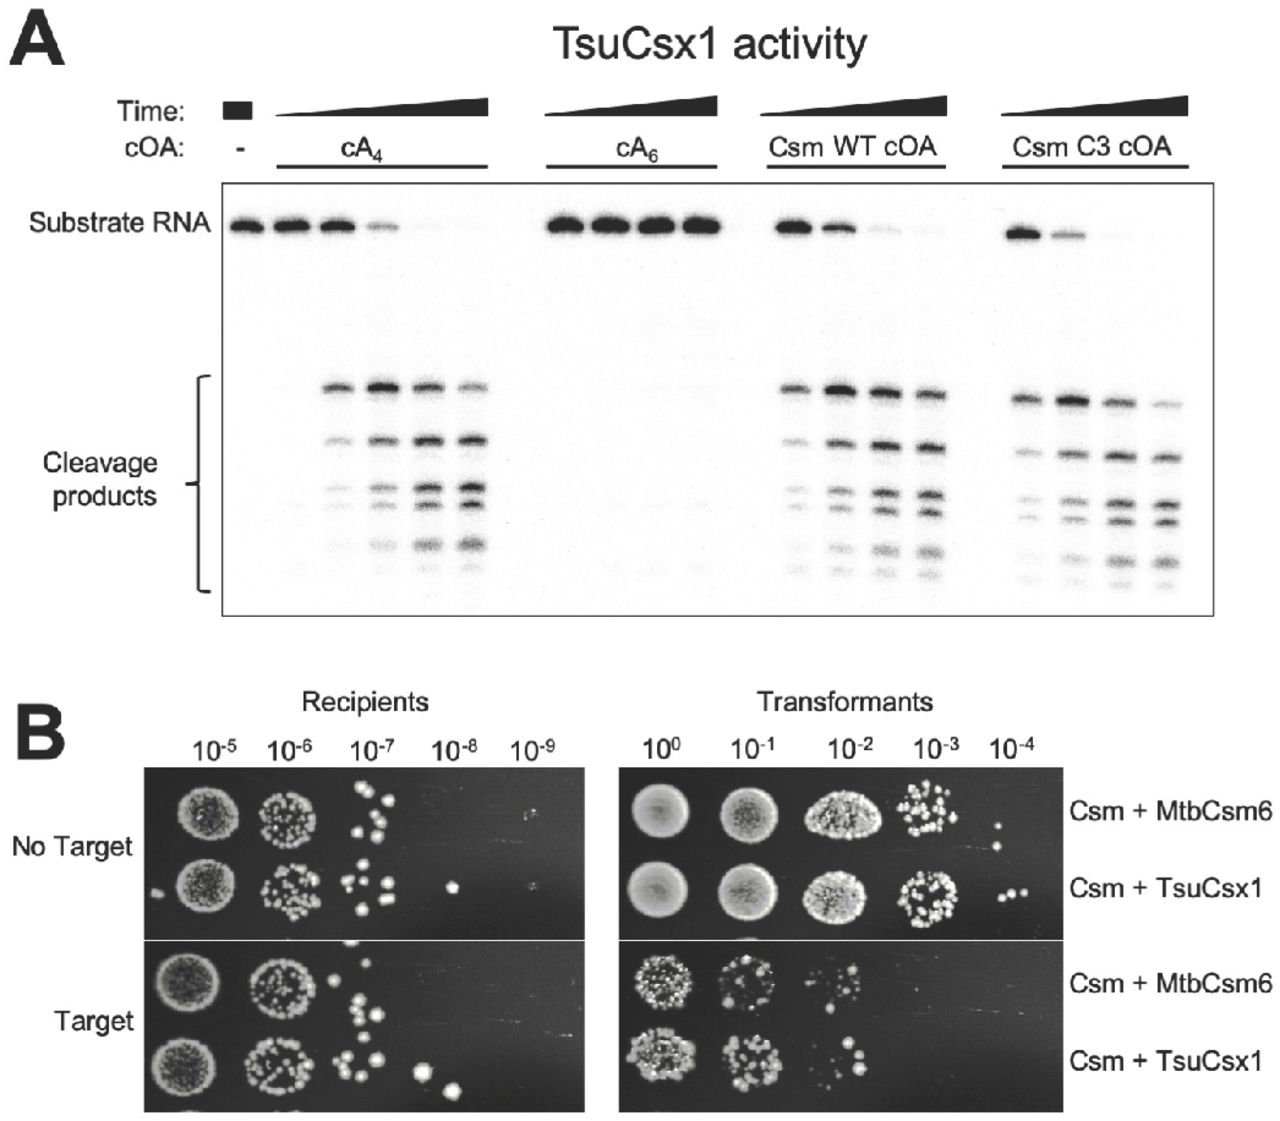 Re-programming the Mtb Csm system for cA 4 -responsive immunity. ( A ) In vitro activity of TsuCsx1. The reaction contained 0.5 µM TsuCsx1 dimer, 100 nM 5'- 32 P-labeled RNA A1, 20 mM Tris, 150 mM NaCl, 1 mM DTT, pH 7.5 and was conducted at 35 °C for 1, 5, 15, 30 min. Activators were added as indicated; Csm-derived cOAs were from a 2 h reaction, otherwise as described for Figure 3 . TsuCsx1 was activated by cA 4 but not cA 6 , and Csm-derived cOAs are able to induce Csx1 ribonuclease activity in vitro . ( B ) Plasmid immunity assay using pUC19 lacZα -targeting Csm effector complex in E. coli C43 (pCsm1-5_Csm6/tsuCsx1 and pCRISPR, Figure S4 ). The ribonuclease was either the cognate Csm6 or TsuCsx1. Cells were transformed with pRAT (control plasmid) or pRAT-Target (target plasmid) and 10-fold serial dilutions were plated on selective plates containing arabinose for induction of target transcription. TsuCsx1 confers the same level of plasmid immunity as the cognate Mtb Csm6.